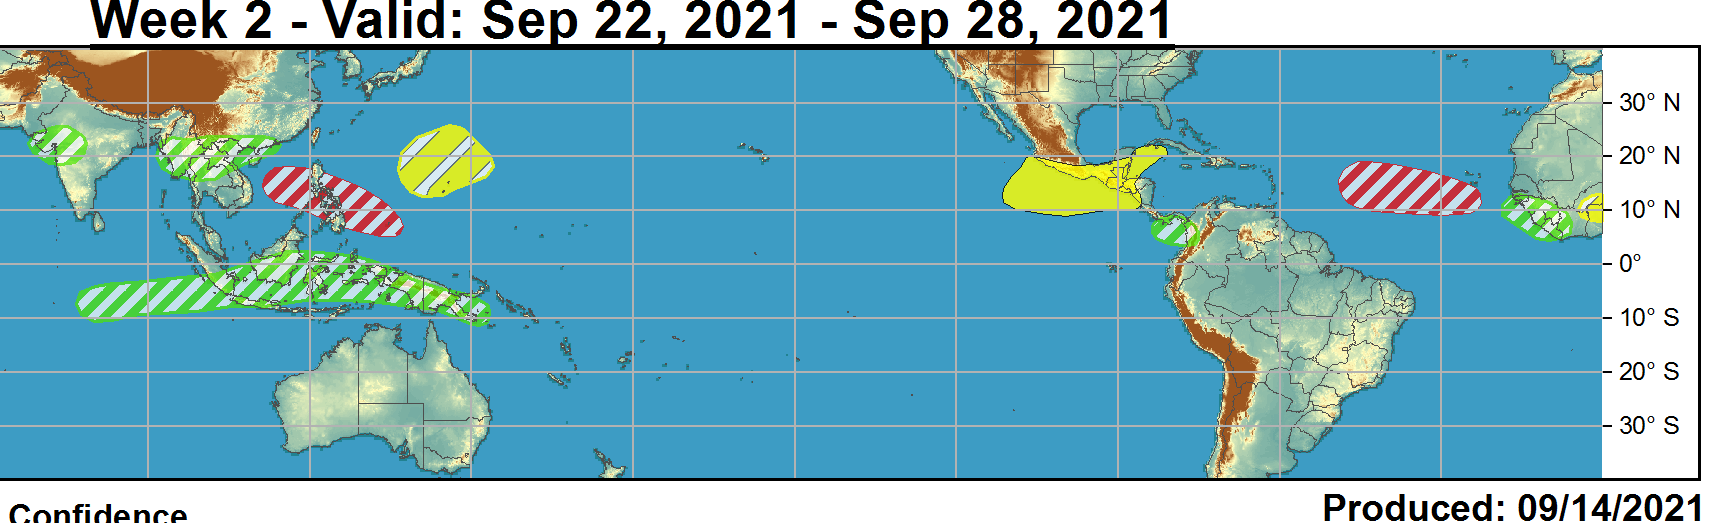 During Week-1, a tropical wave emerging off the western coast of Africa has a 90 percent chance of development according to the latest tropical weather outlook from the National Hurricane Center (NHC). Additionally, low pressure is anticipated to form north of the Bahamas during Week-1, with a 60 percent chance of formation through the next five days. This potential system will most likely remain offshore, but may bring some impacts to the coastal Carolinas as it tracks generally northward. Late in Week-1 or early Week-2 period, a second tropical wave is forecast to emerge from Africa and has a moderate potential for development. NOAA.